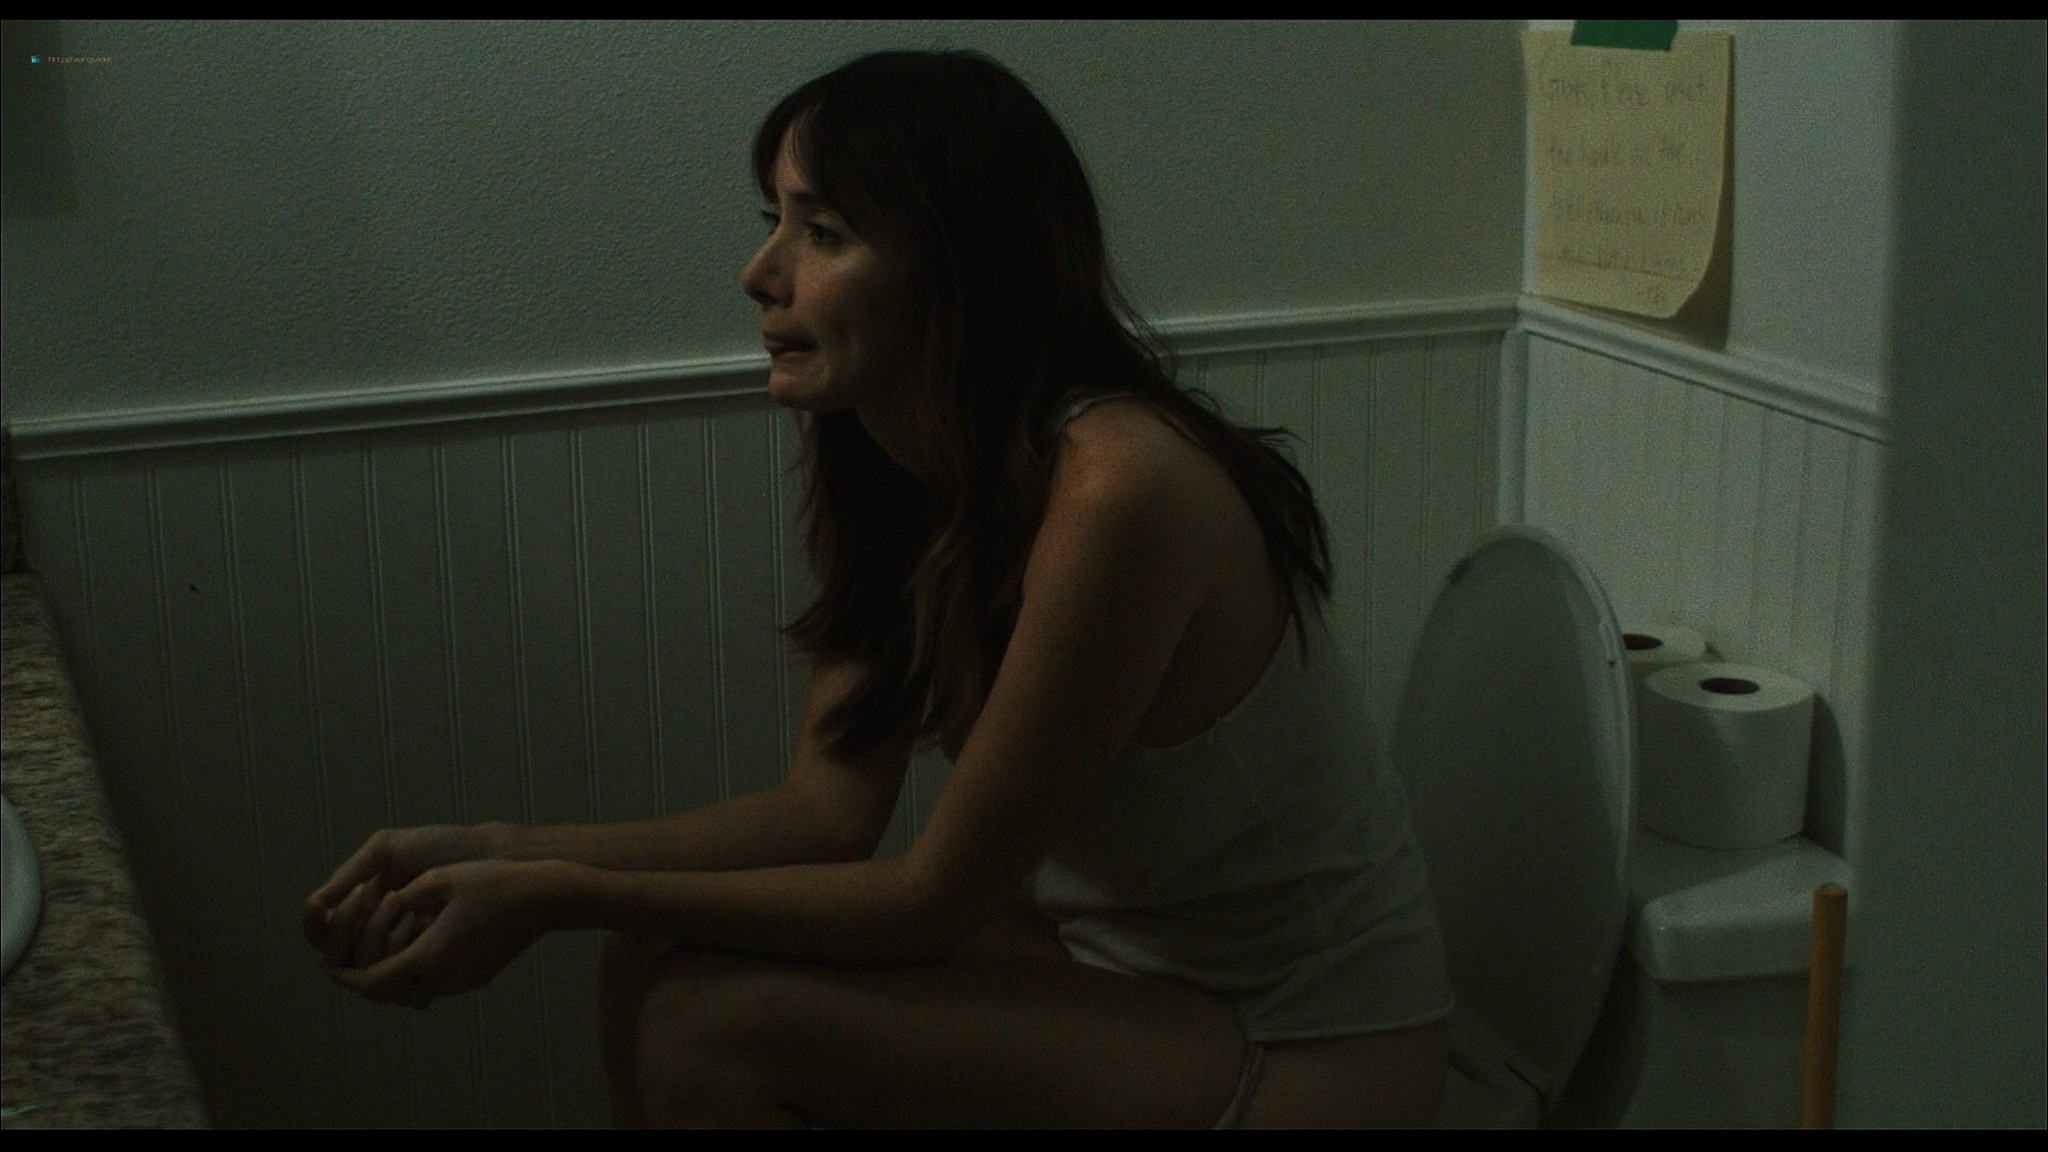 Sara Malakul Lane nude topless in the shower - Wishing for a Dream (2016) 1080p Web